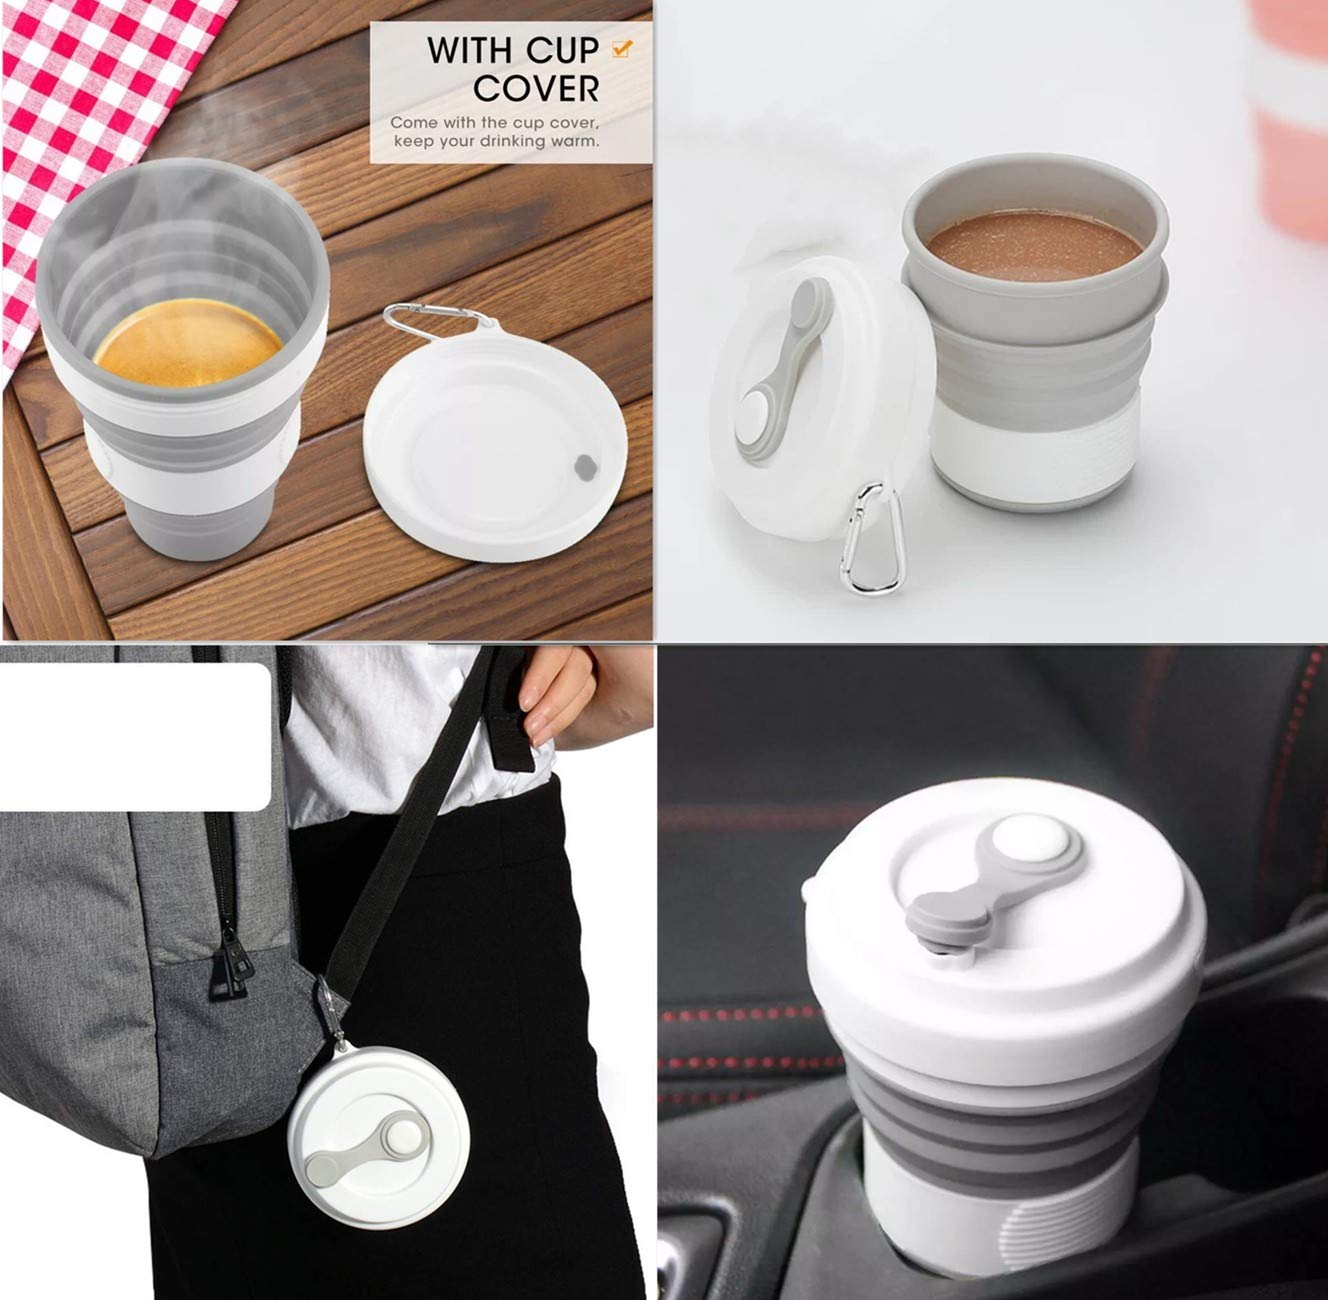 Grey Portable BPA Free Sport Bottle with Lid Reusable Foldable Water Bottle for Outdoor Hiking Camping School Indoor WNnest Silicone Collapsible Travel Cup